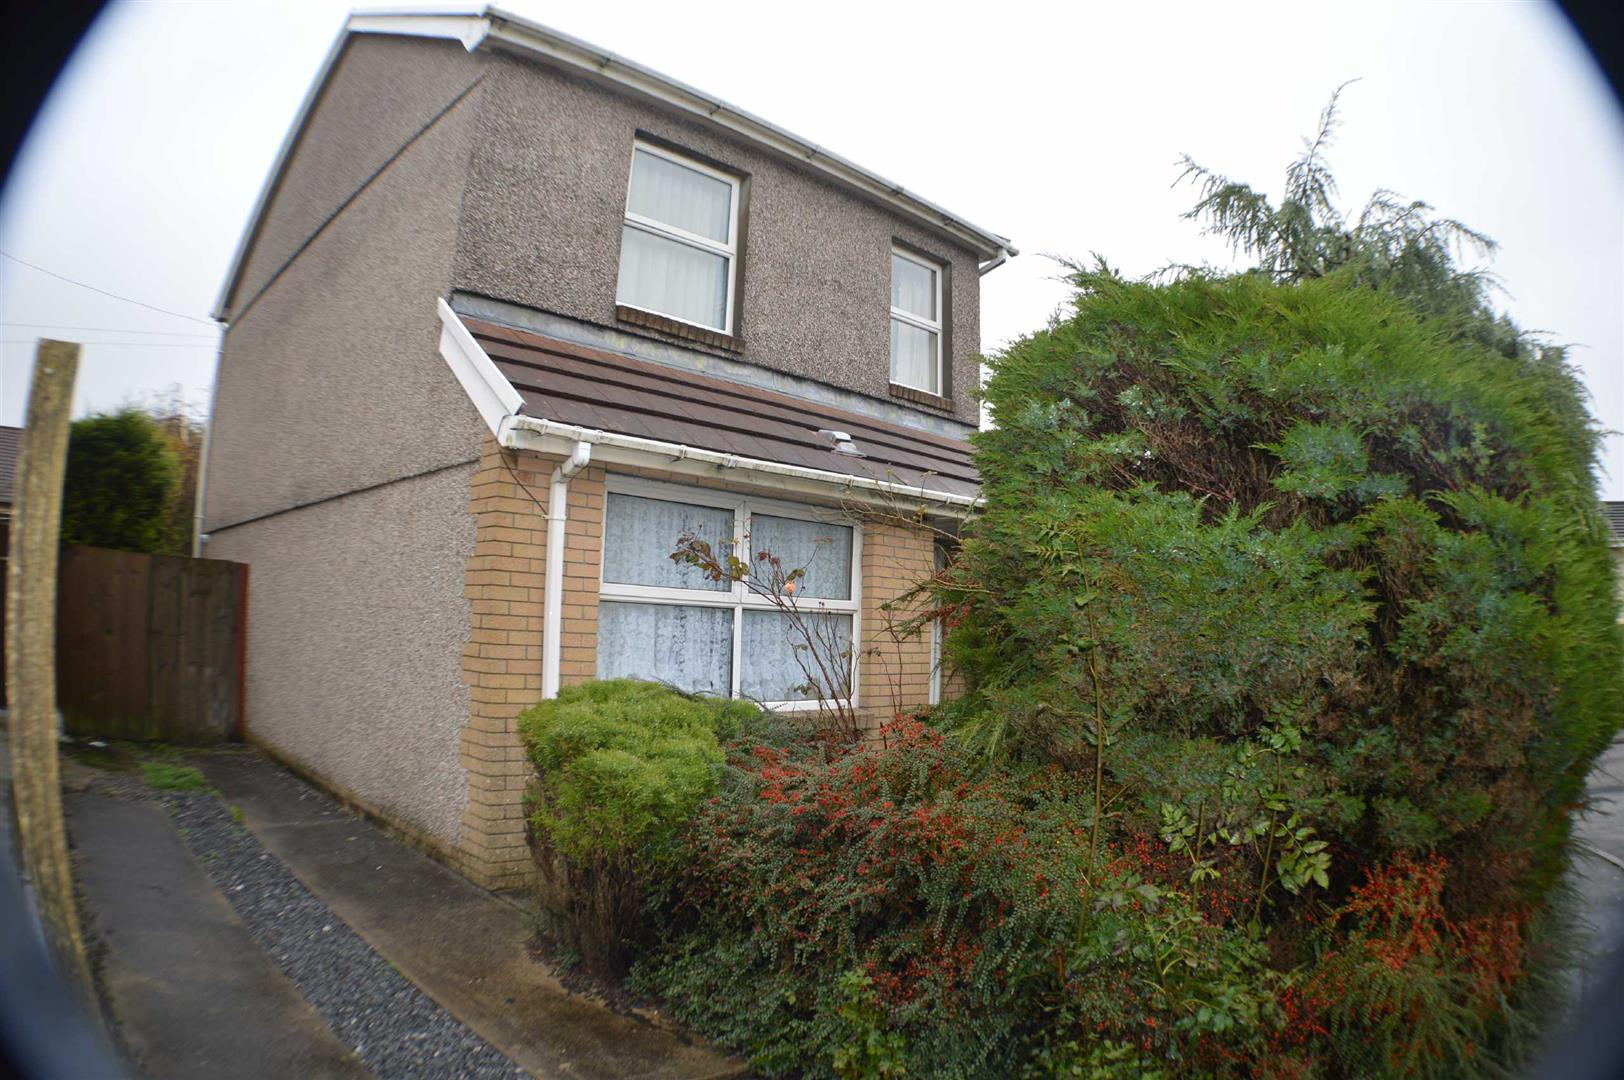 Moorview Close, Gendros, Swansea